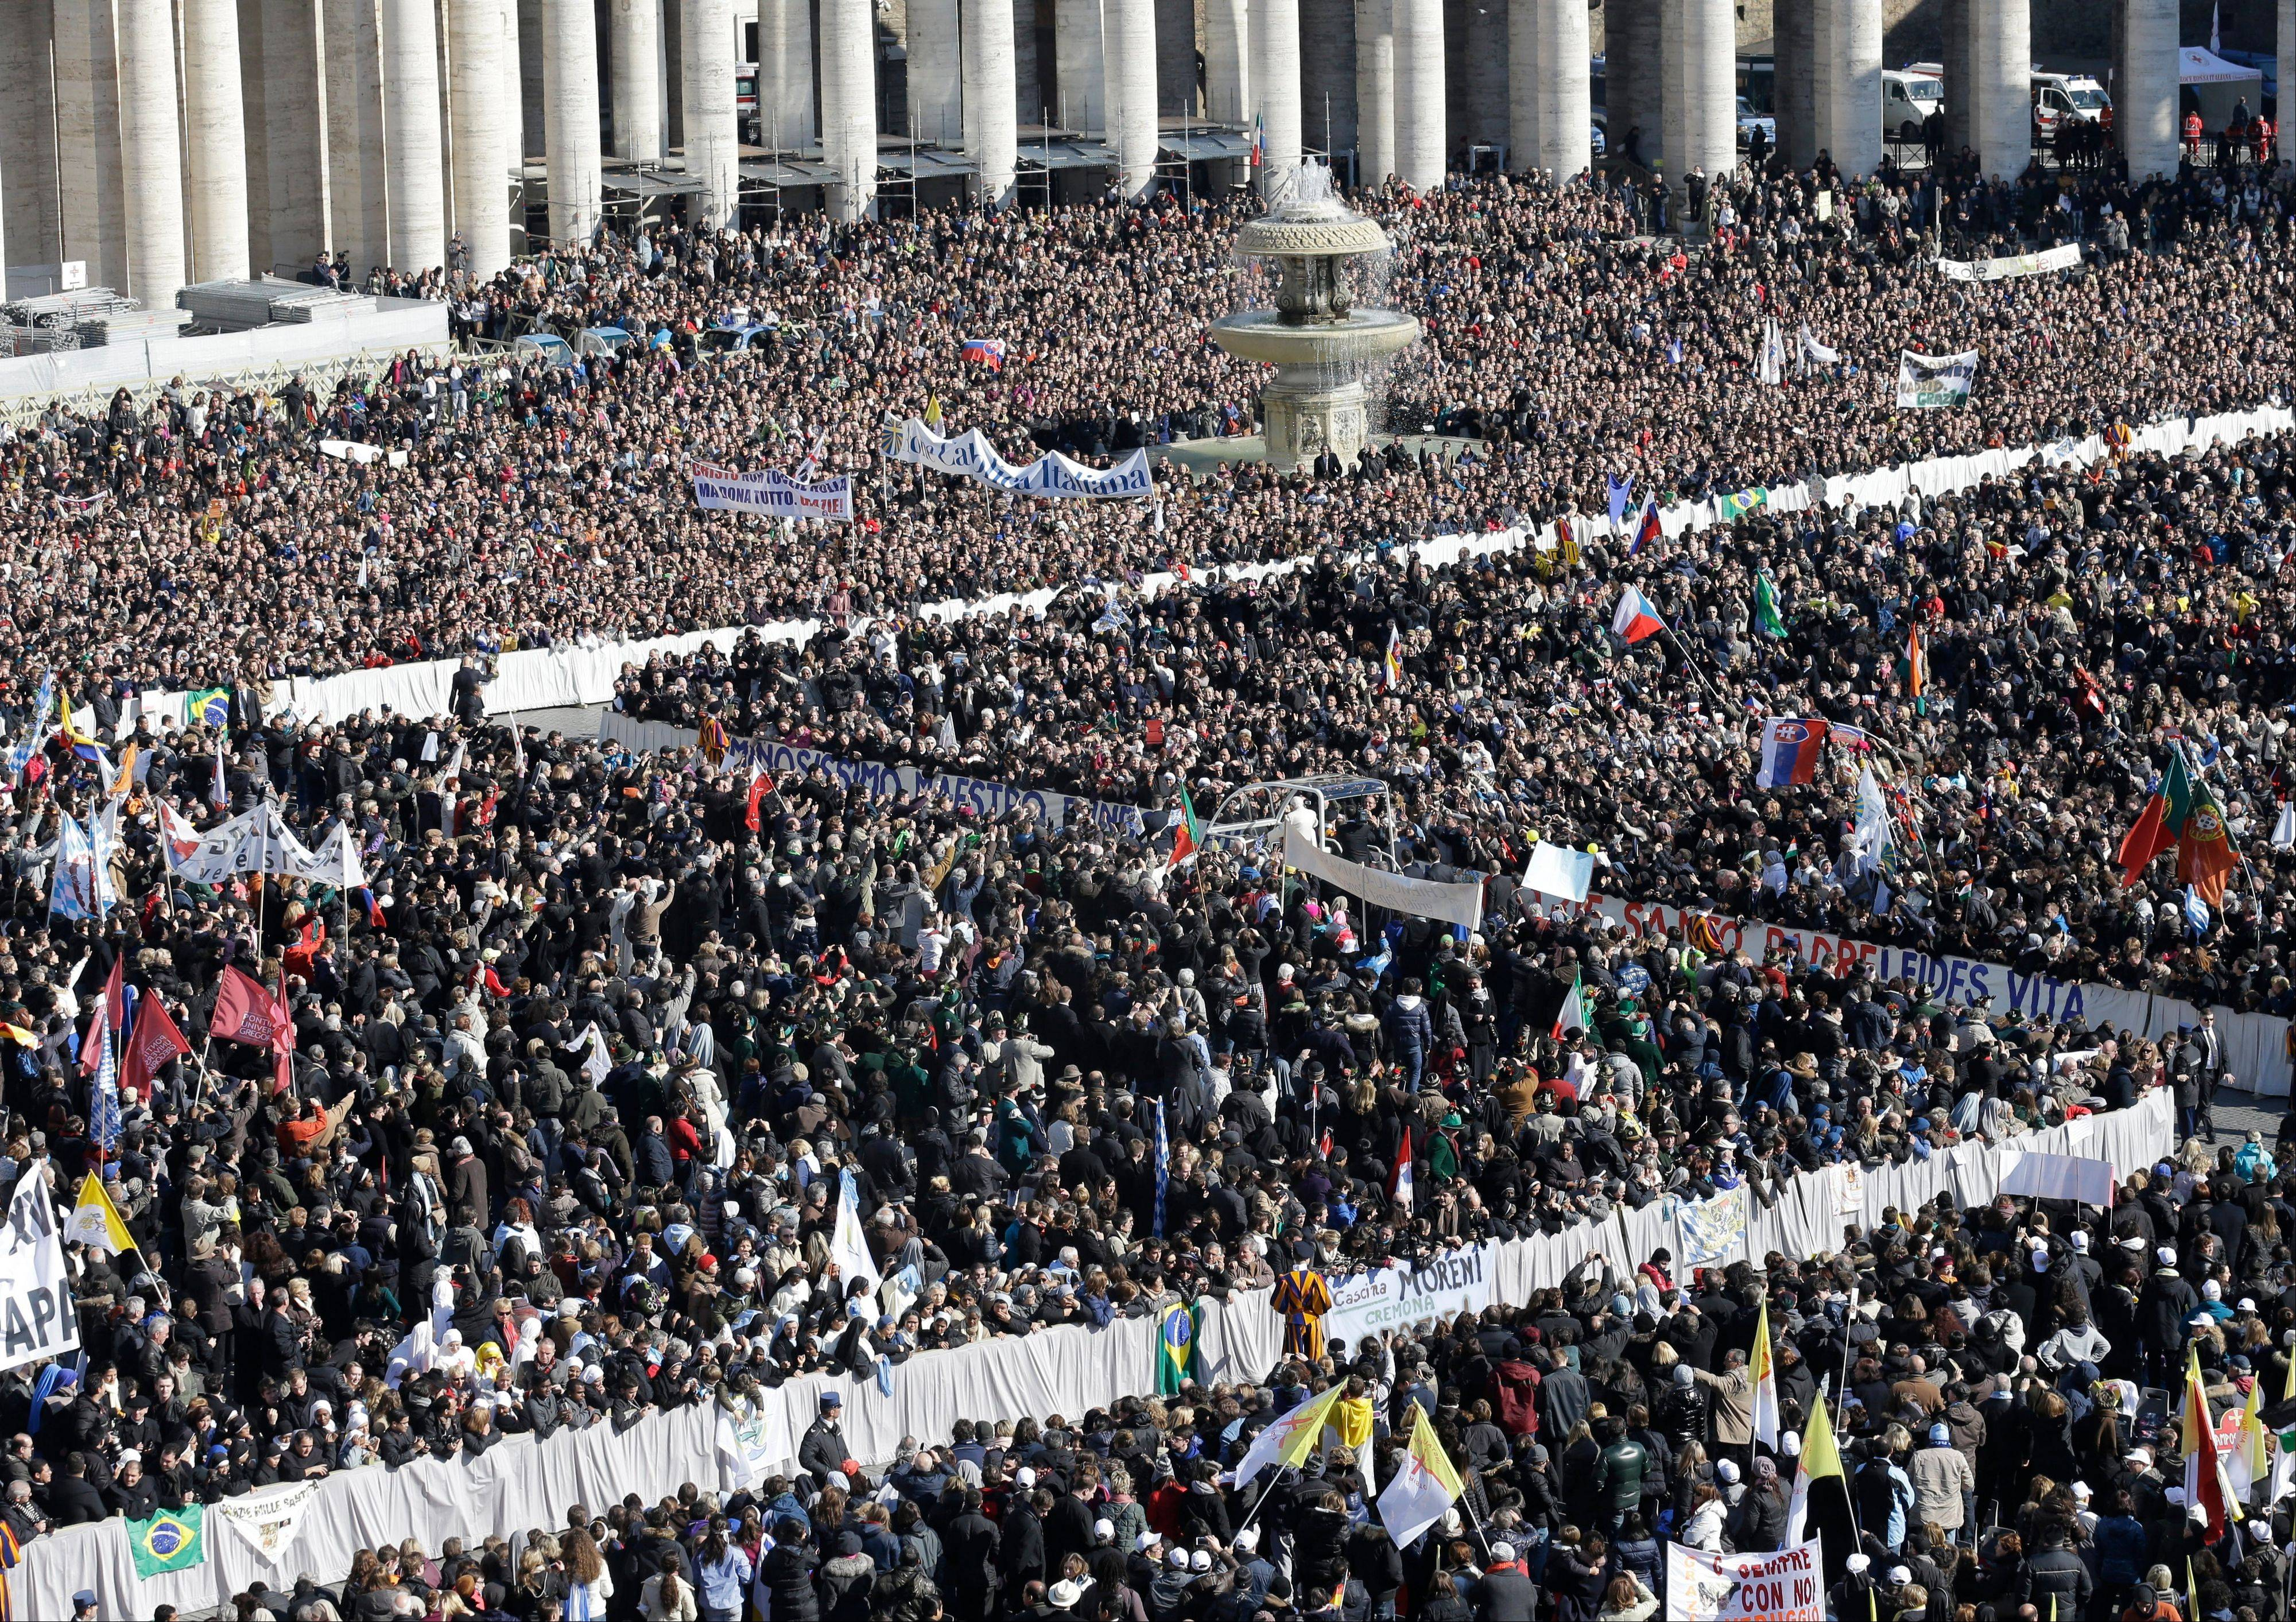 Pope Benedict XVI is driven through the crowd as he greets pilgrims in St. Peter's Square at the Vatican, Wednesday, Feb. 27, 2013 for the final time before retiring, waving to tens of thousands of people who have gathered to bid him farewell.